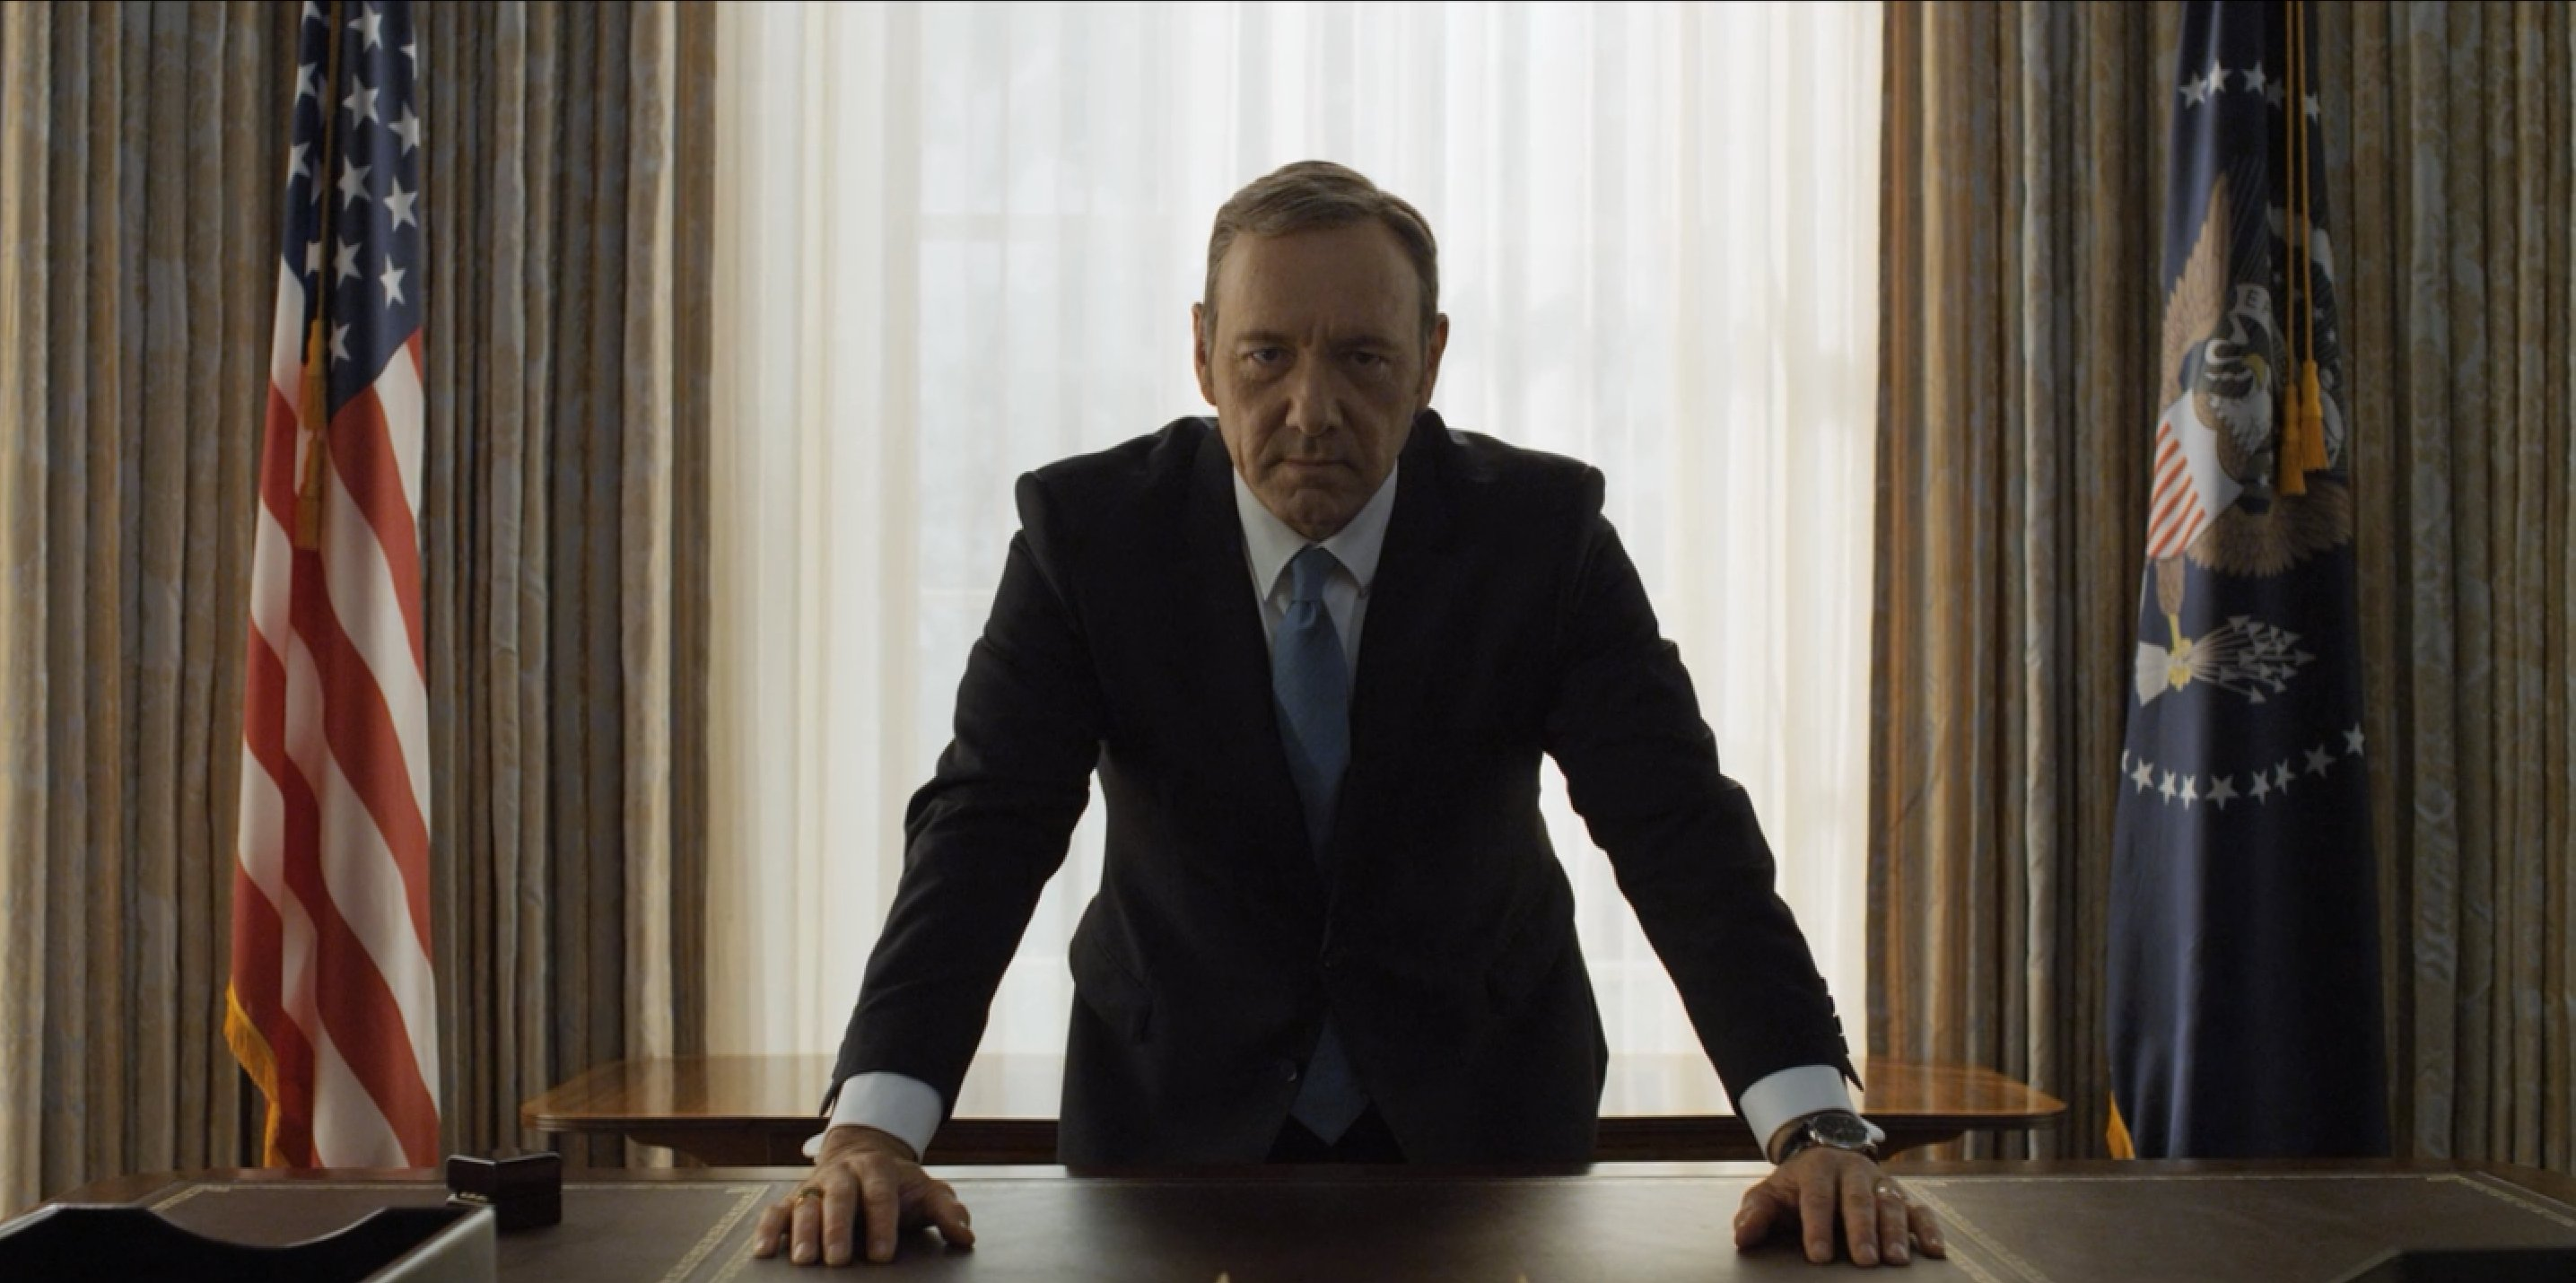 House of Cards wallpaper 5